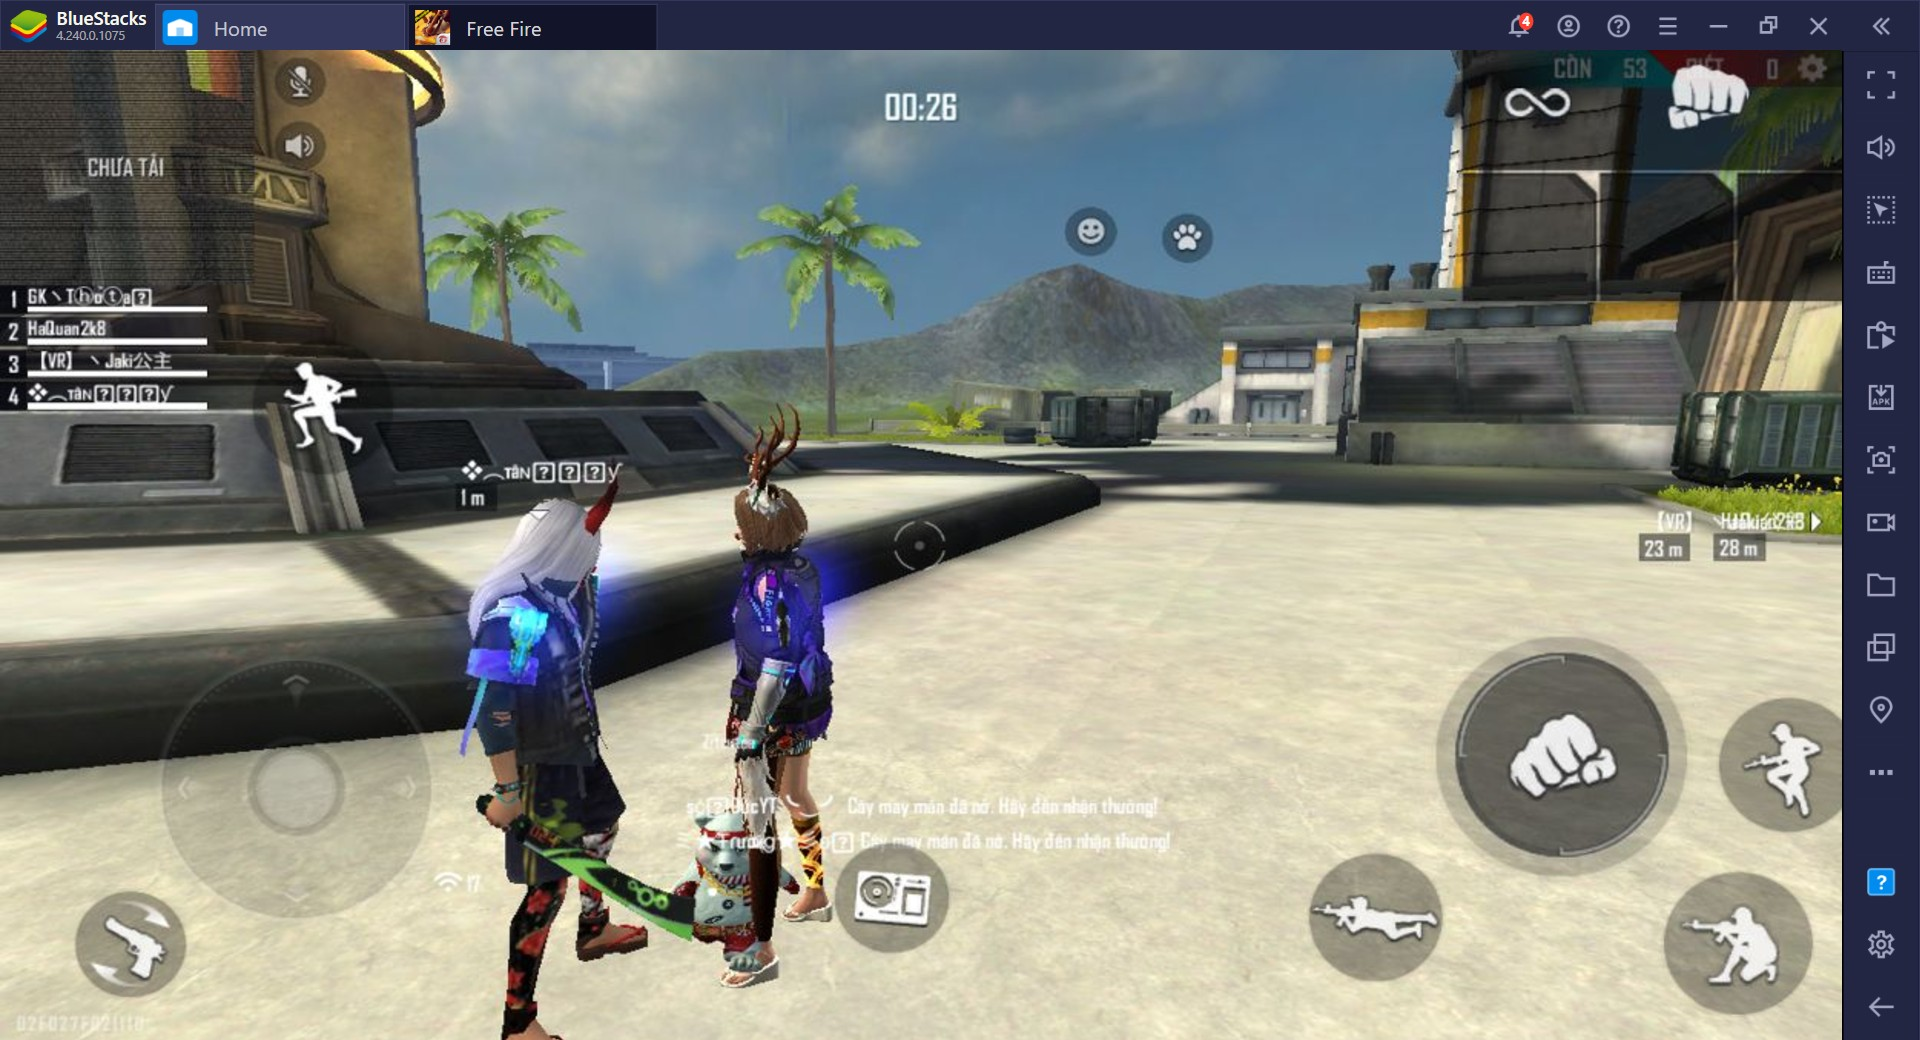 Free Fire Guide BlueStacks Edition: Start Taking Dragshots with Ease